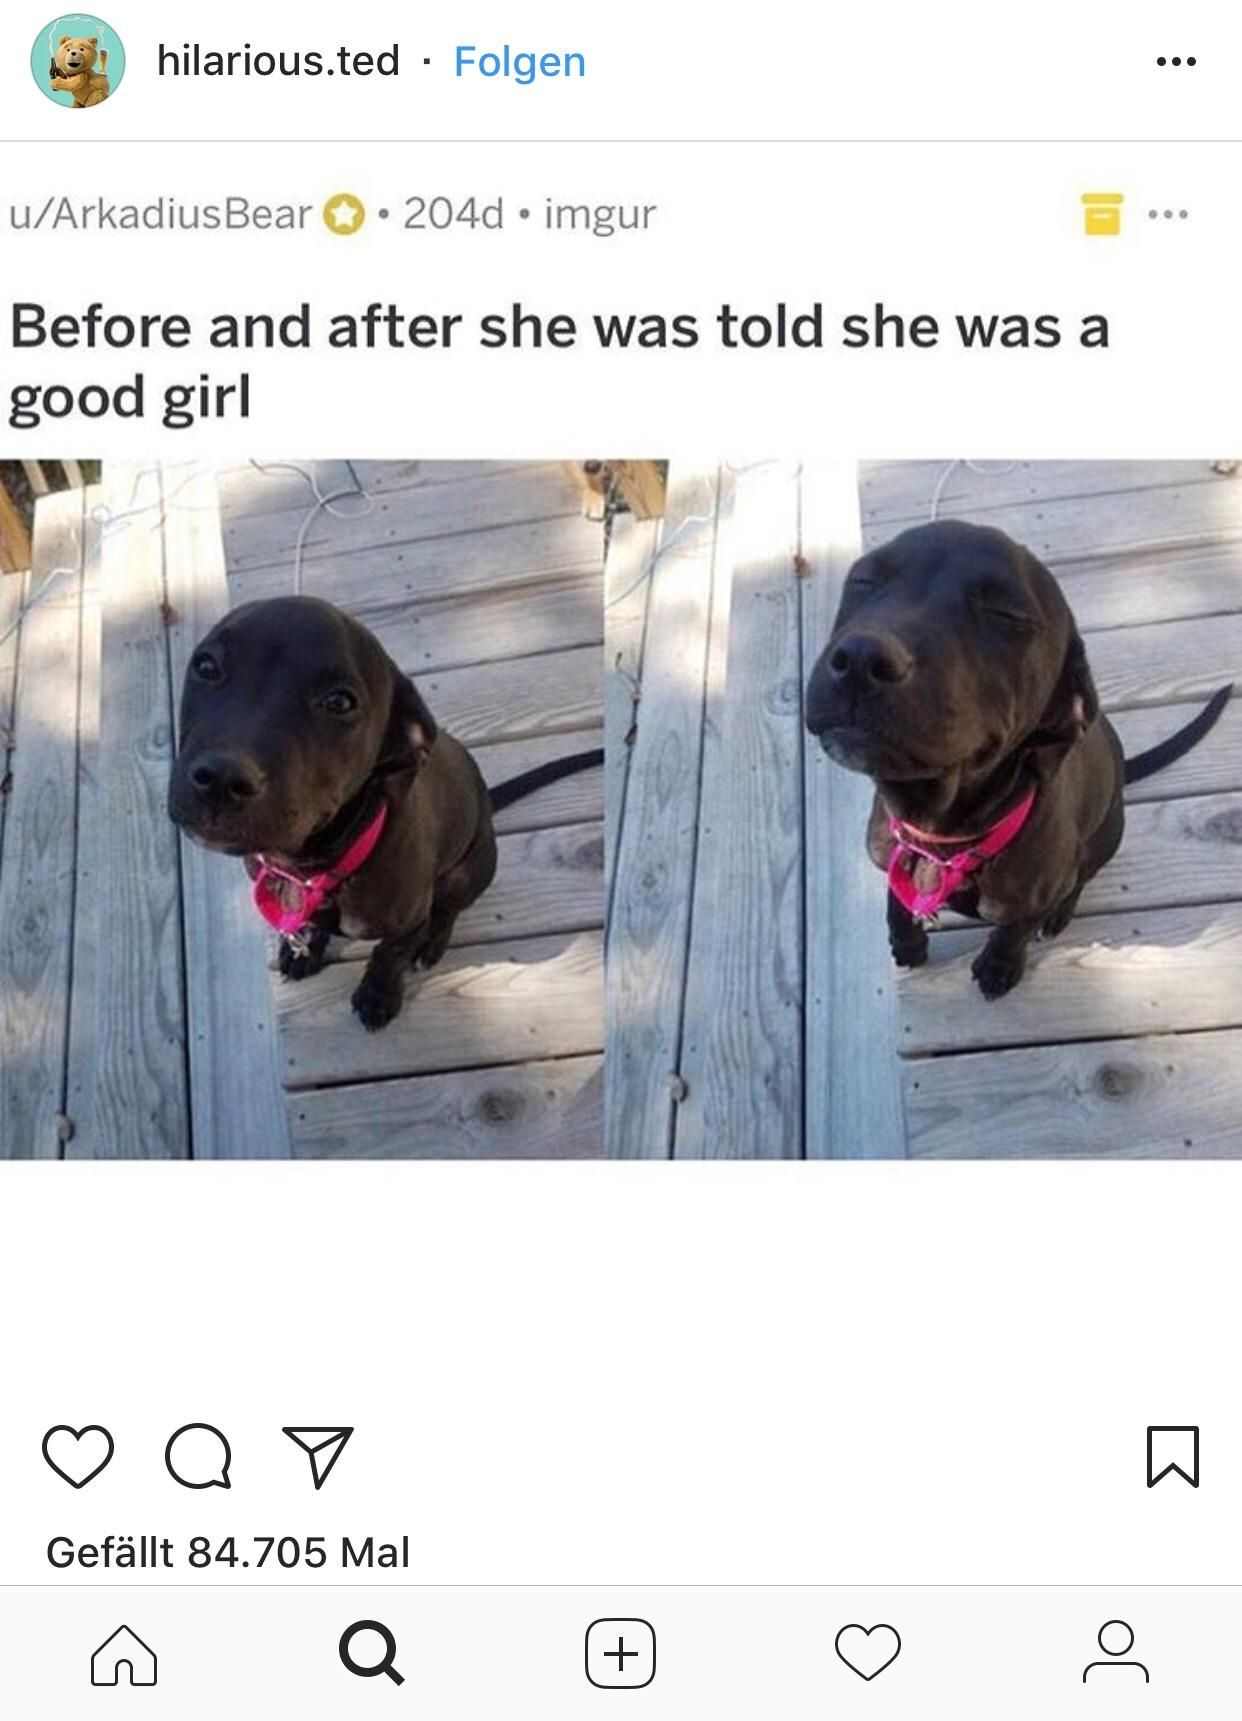 Instagram Page Copies Reddit Post And Gets Over 84k Likes Cute